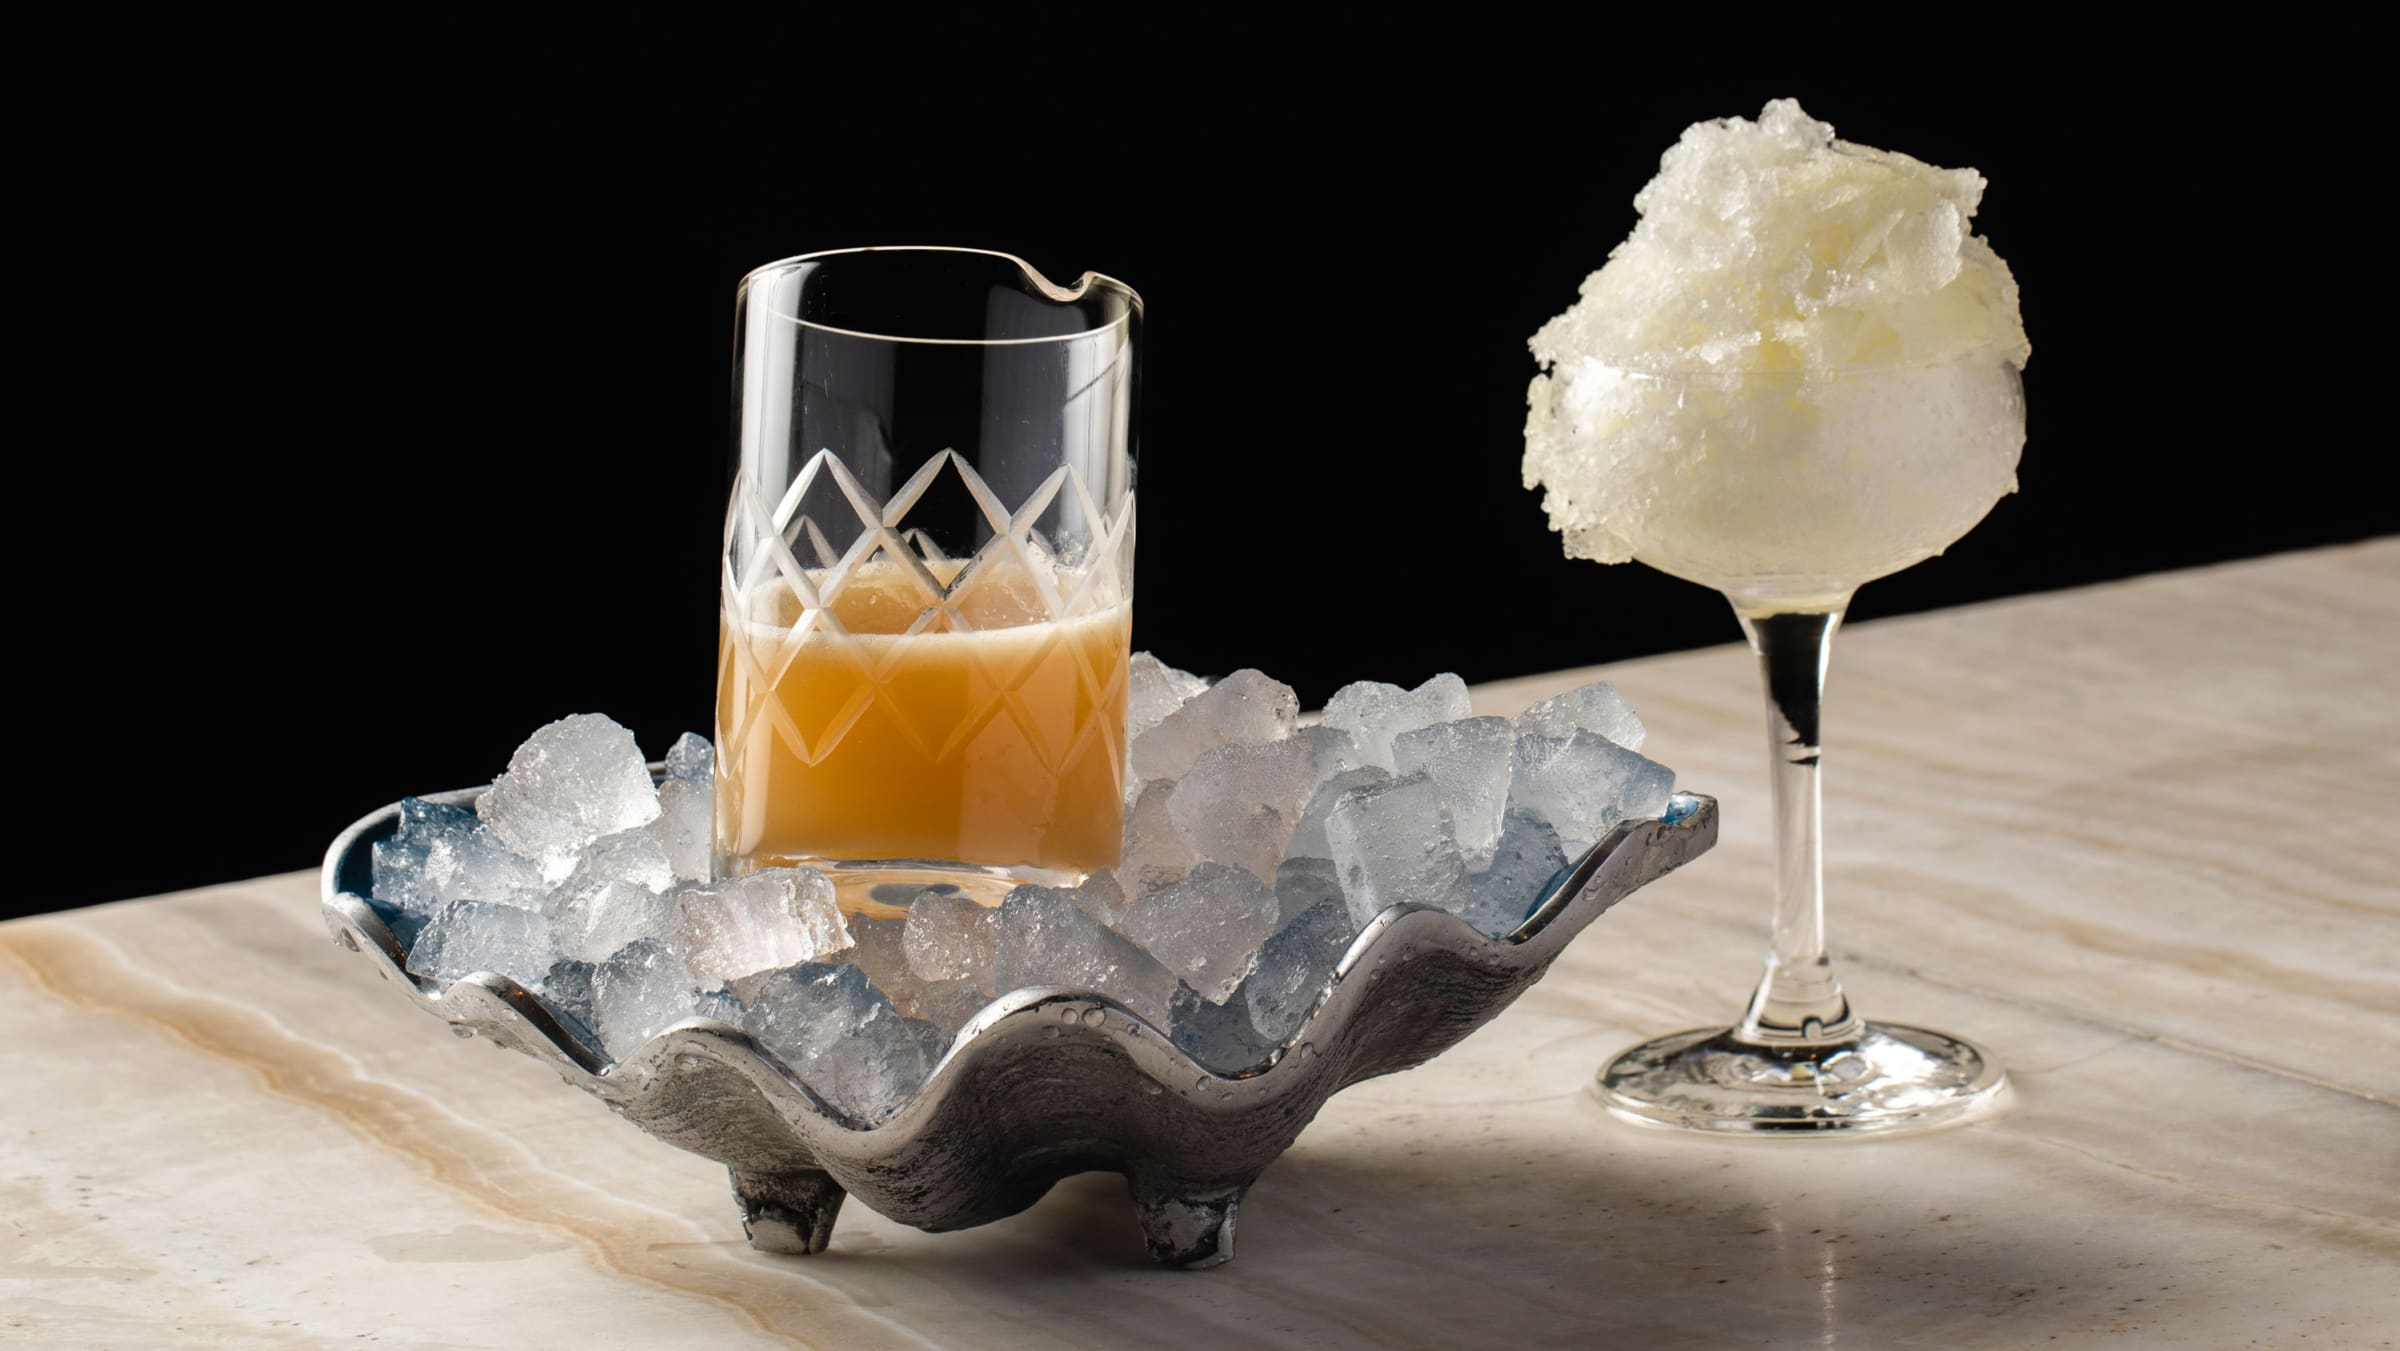 Bartender Kevin Beary From the Bamboo Room Is Obsessed With Shaved Ice